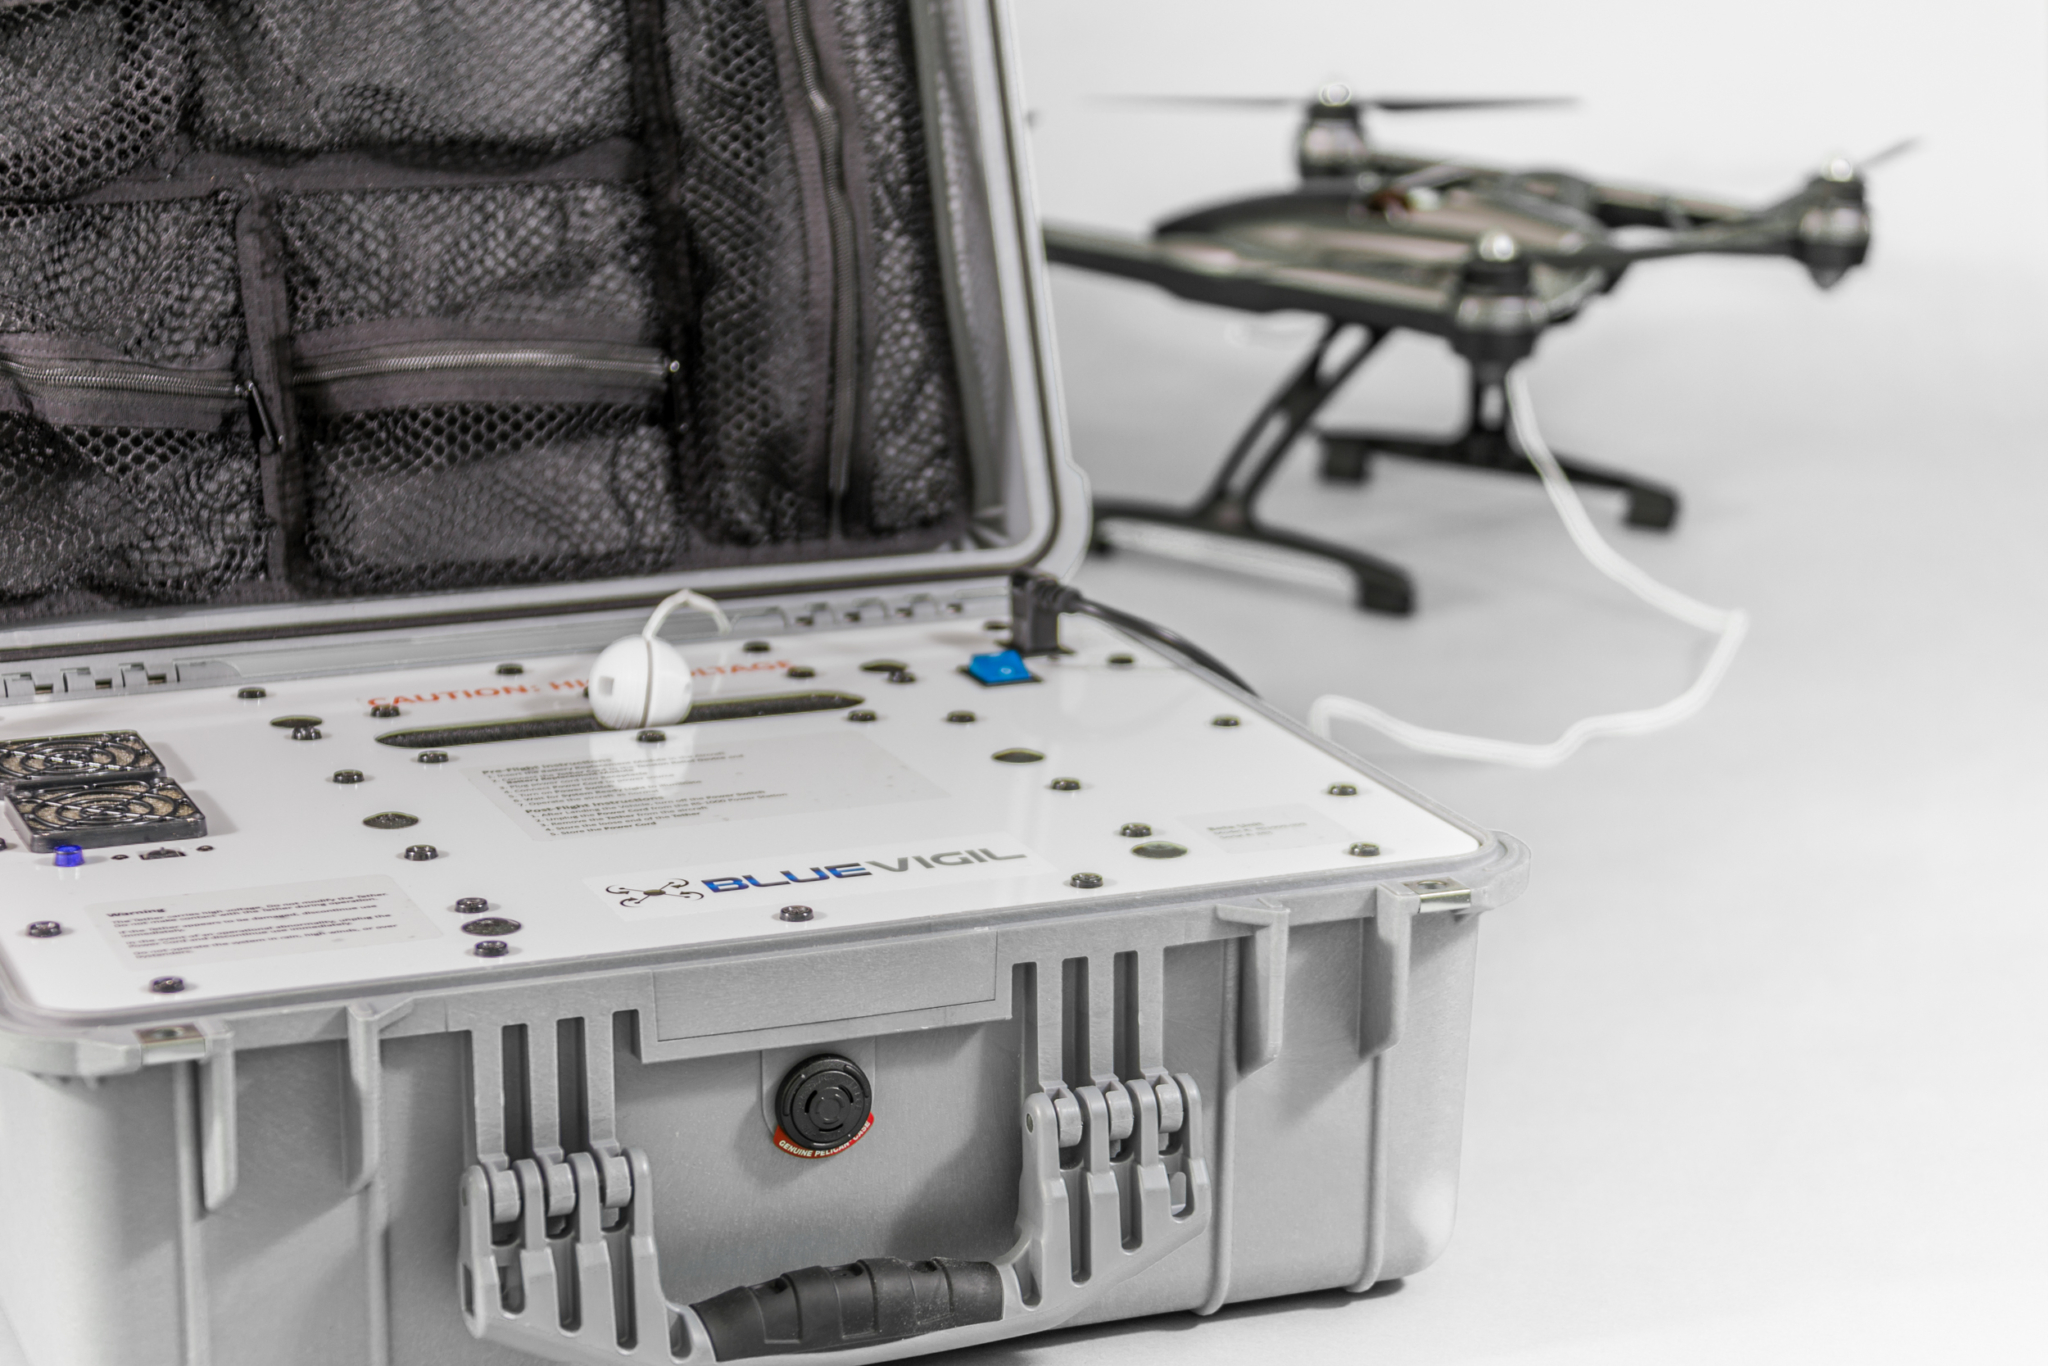 Blue Vigil Tethered Drone Product